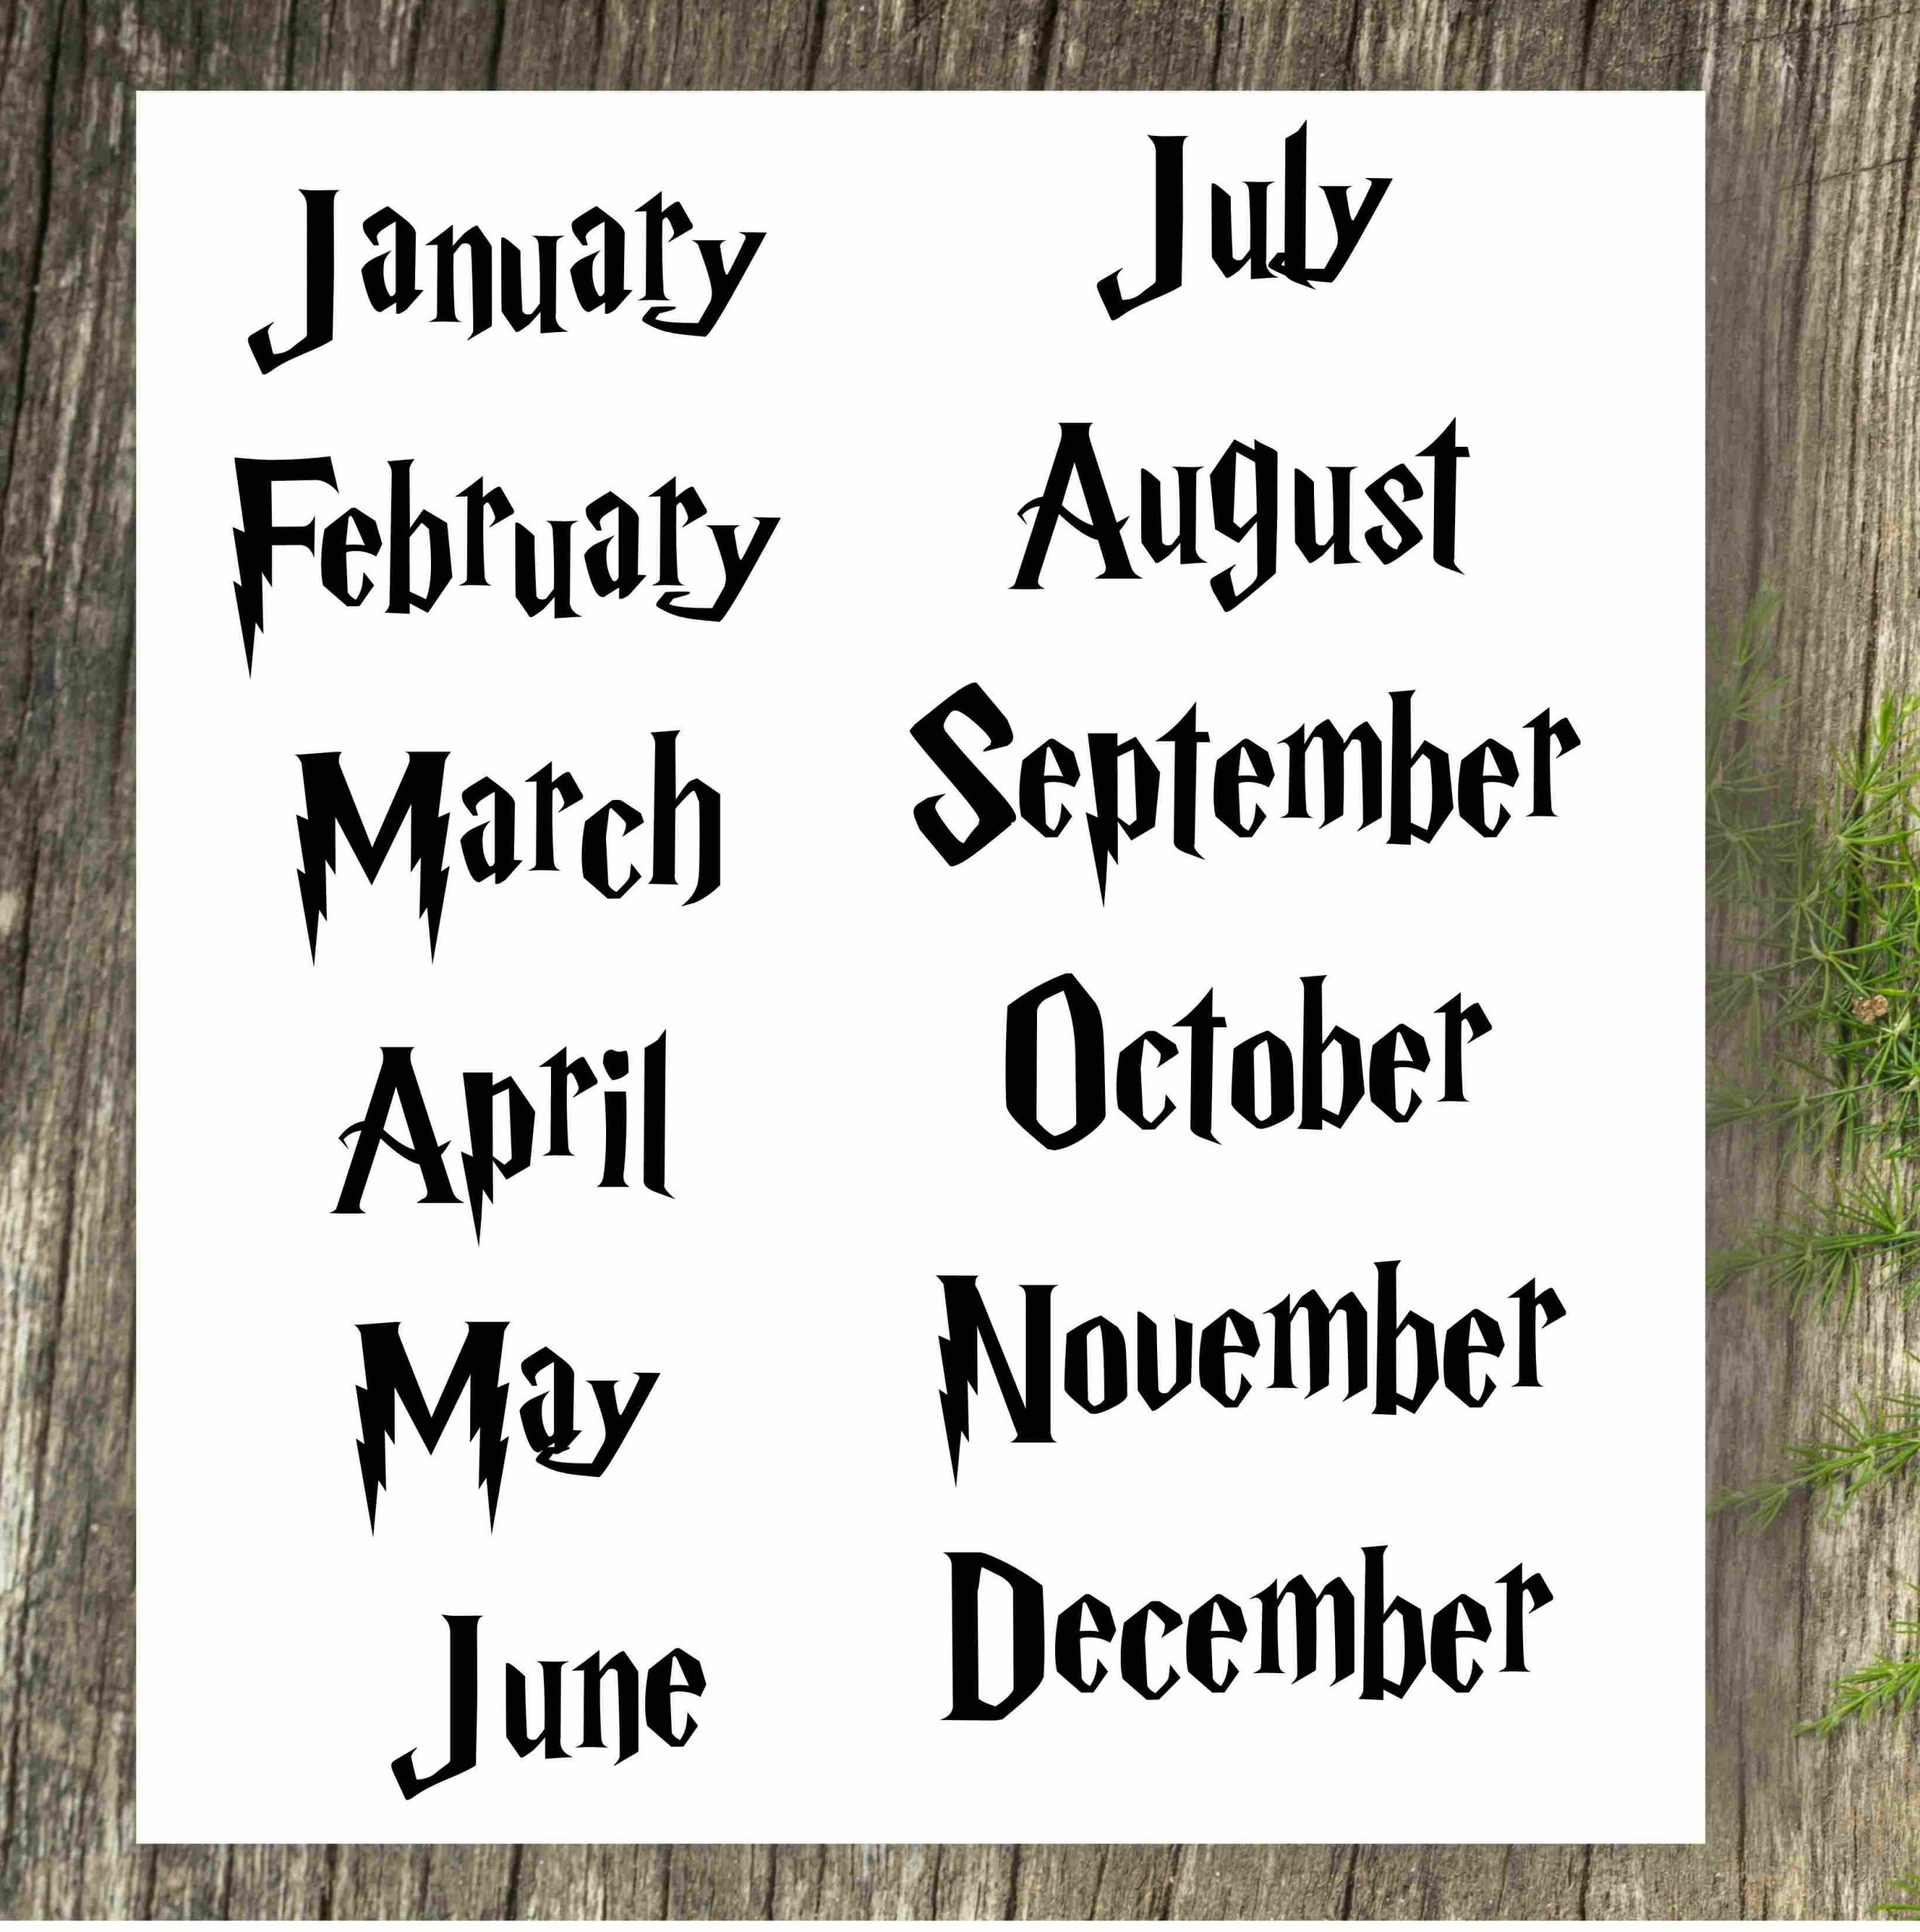 Pregnancy Announcement Calendar - Harry Potter - Personalized How To Make Baby Due Date Calendar April 2020